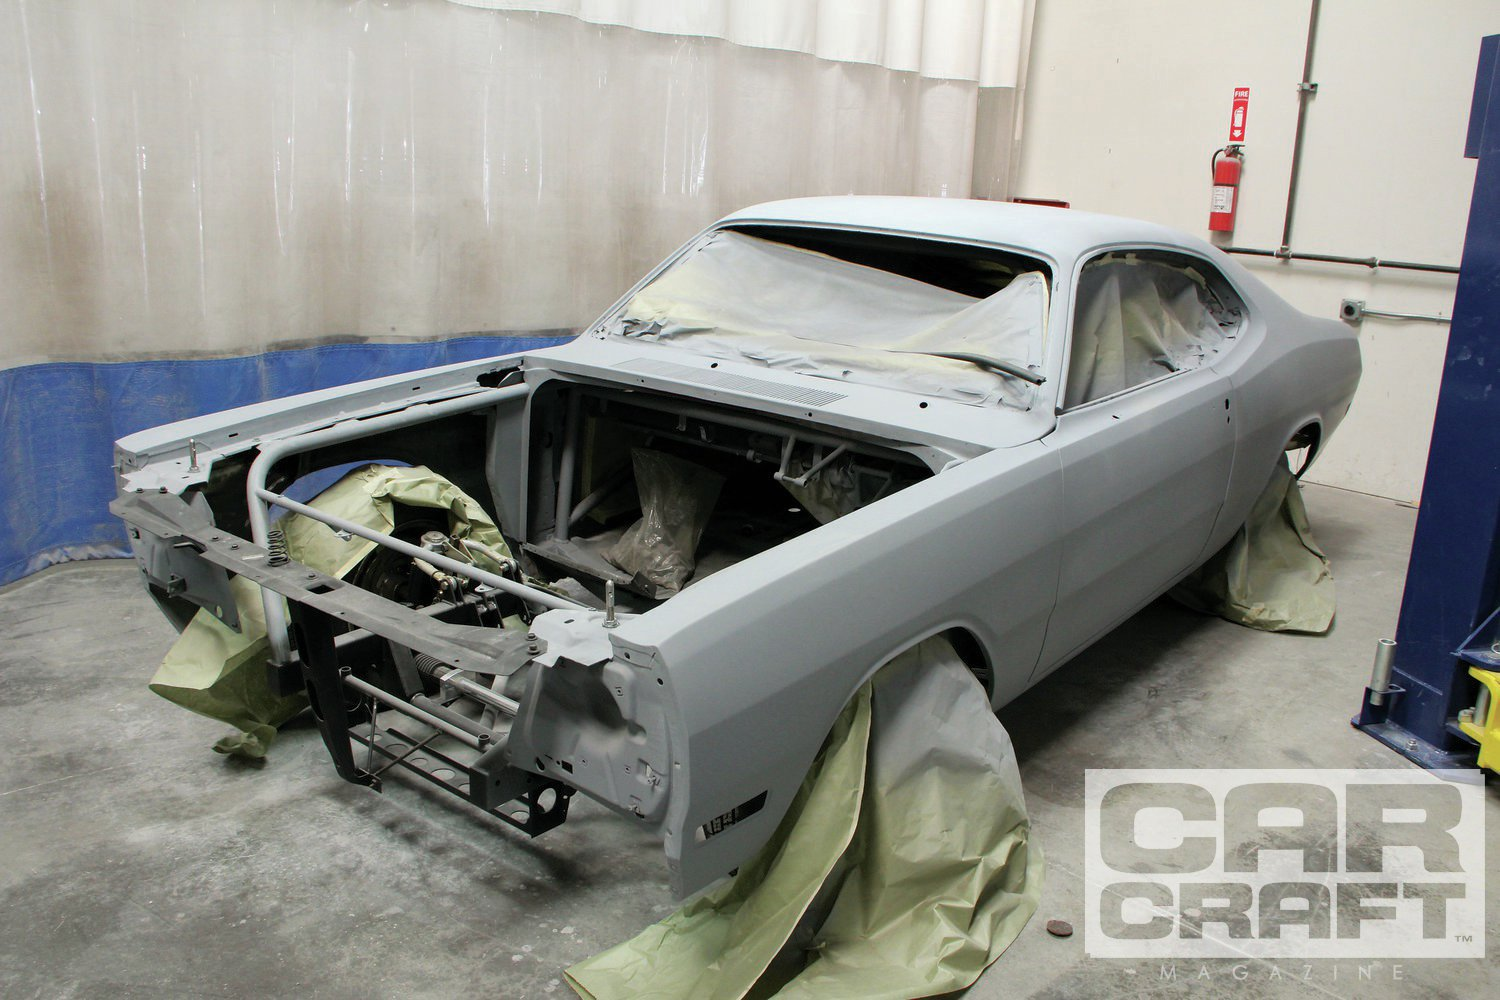 After disassembling the car completely, we sent the car to Elite Auto Restorations in Paramount, California, for body and paint. By the time you read this, the car will be painted '68 B5 Blue Fire with graphics by The Harpoon and paint by Danny at Elite. And it still won't be done…